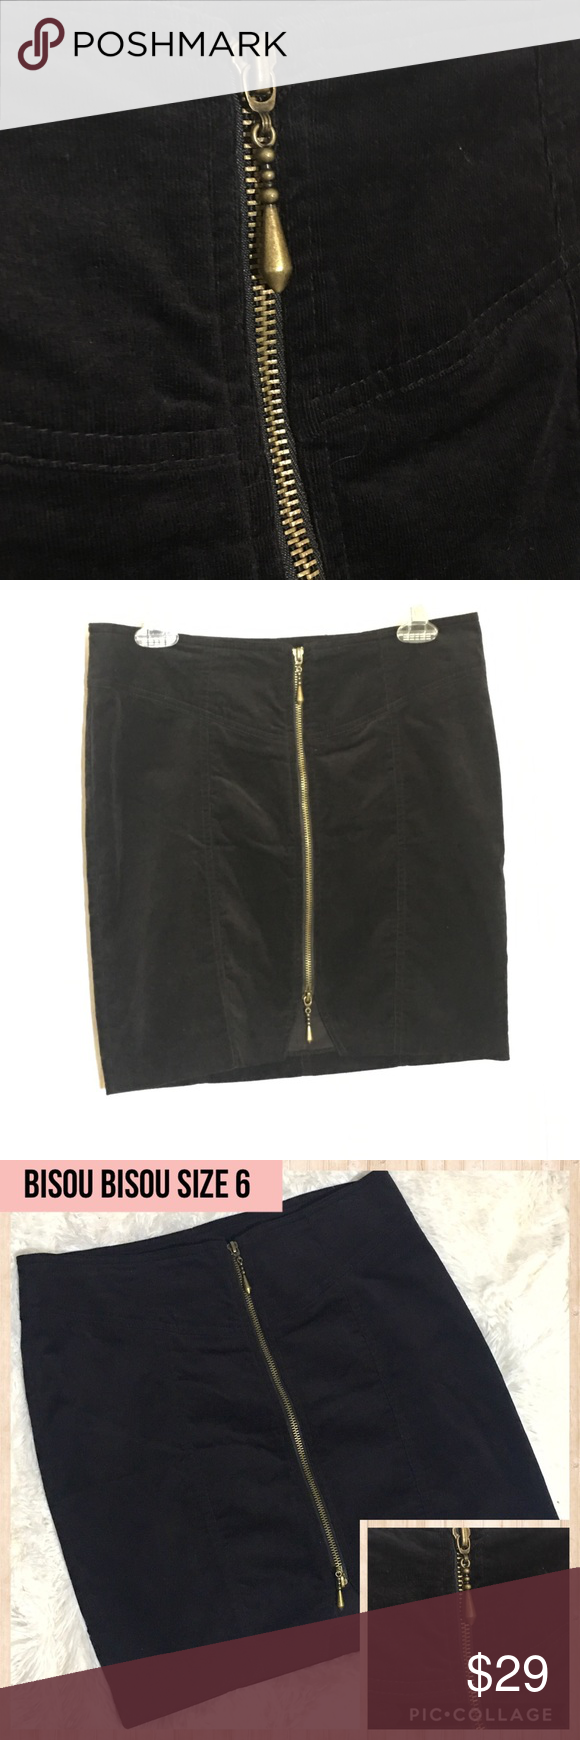 1253307465 Bisou Bisou Black Corduroy ZIP Front Mini Skirt 6 ****Bisou Bisou Mini Skirt****  •Black •Zips up front with gold/bronze zipper •Features small slit opening  ...